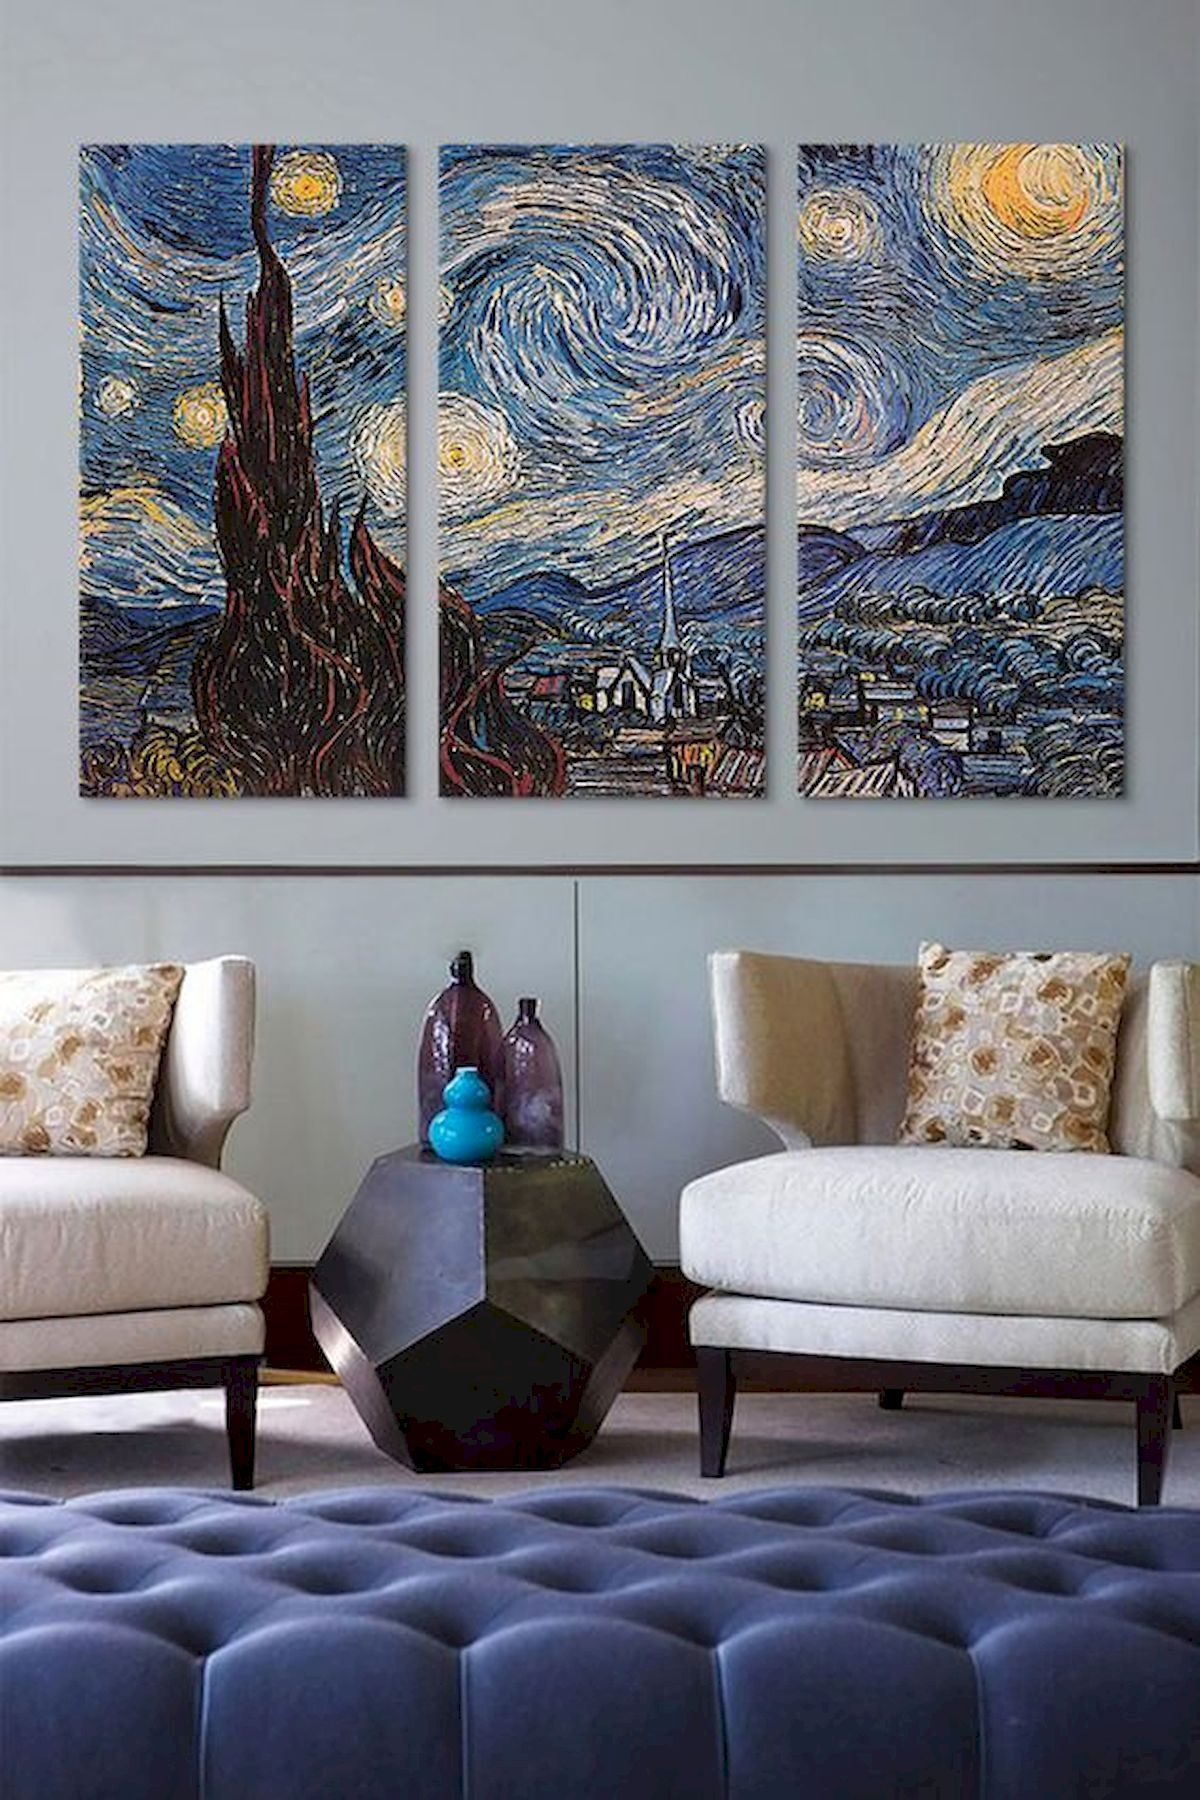 Awesome 25 Stunning Wall Painting Ideas That So Artsy Source Link Https Roomadness Com 2018 Starry Night Bedroom Starry Night Van Gogh Starry Night Painting